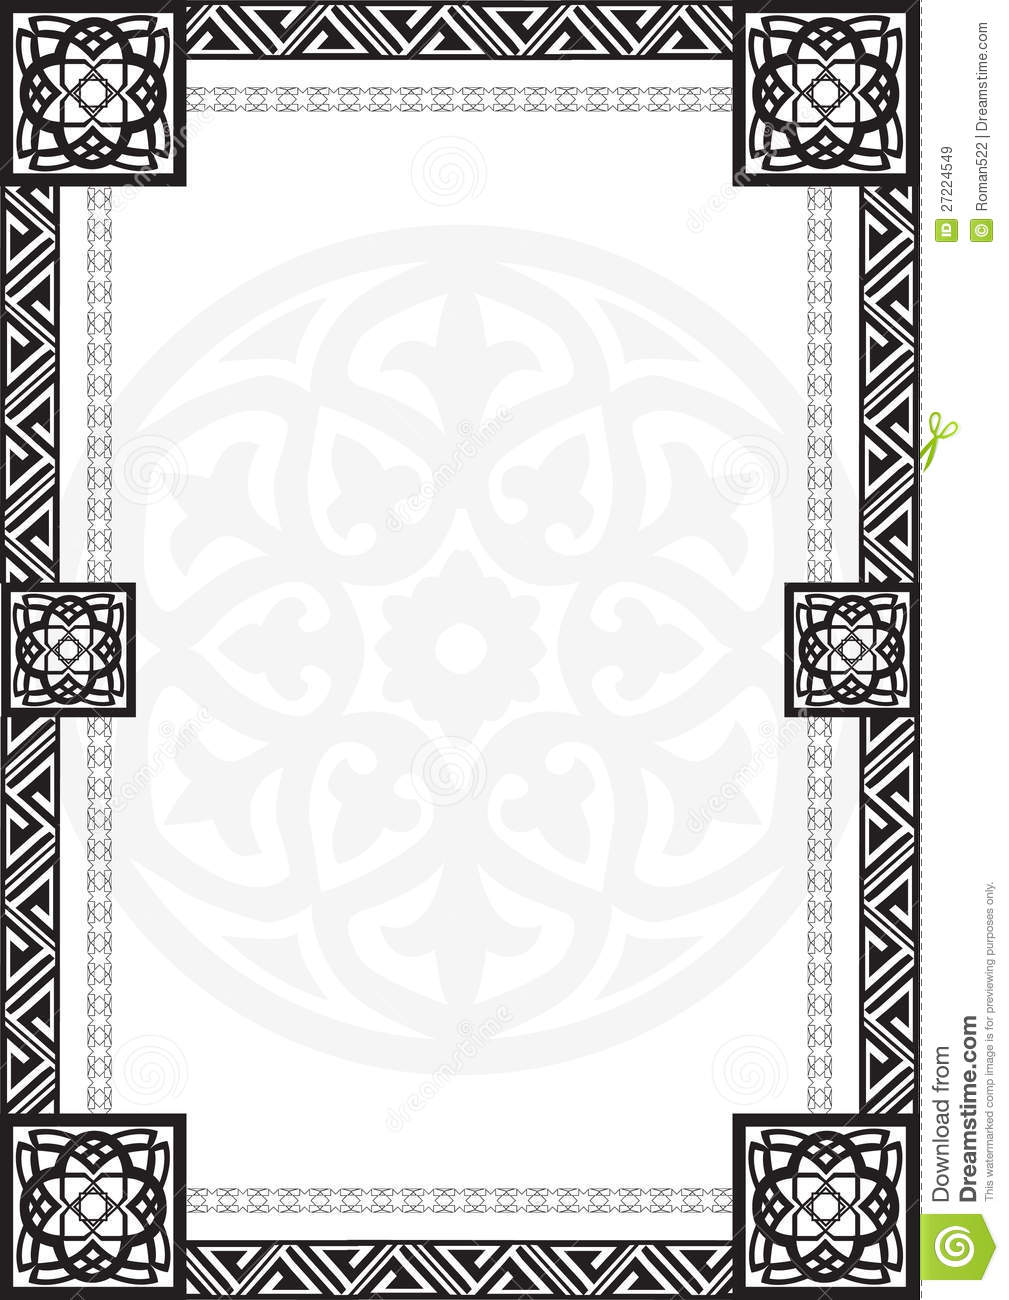 More similar stock images of ` Frame with Arabic geometrical patterns ...